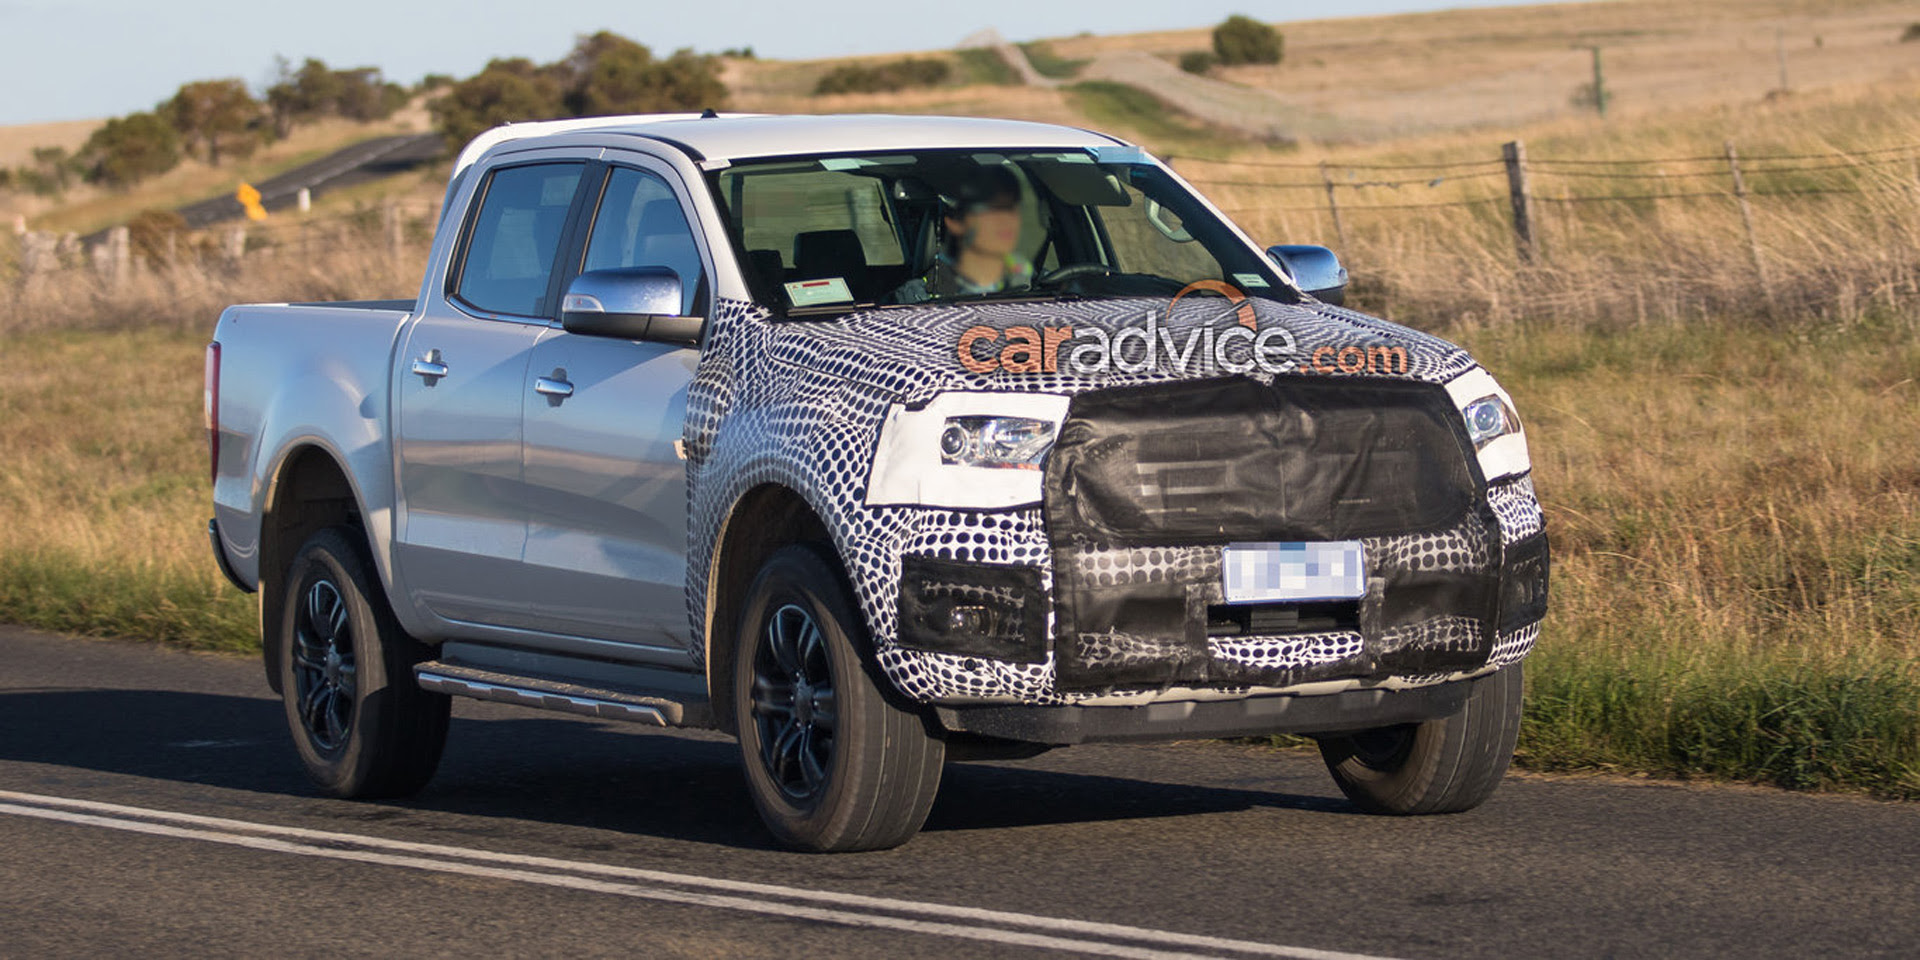 2019 Ford Ranger spy shots